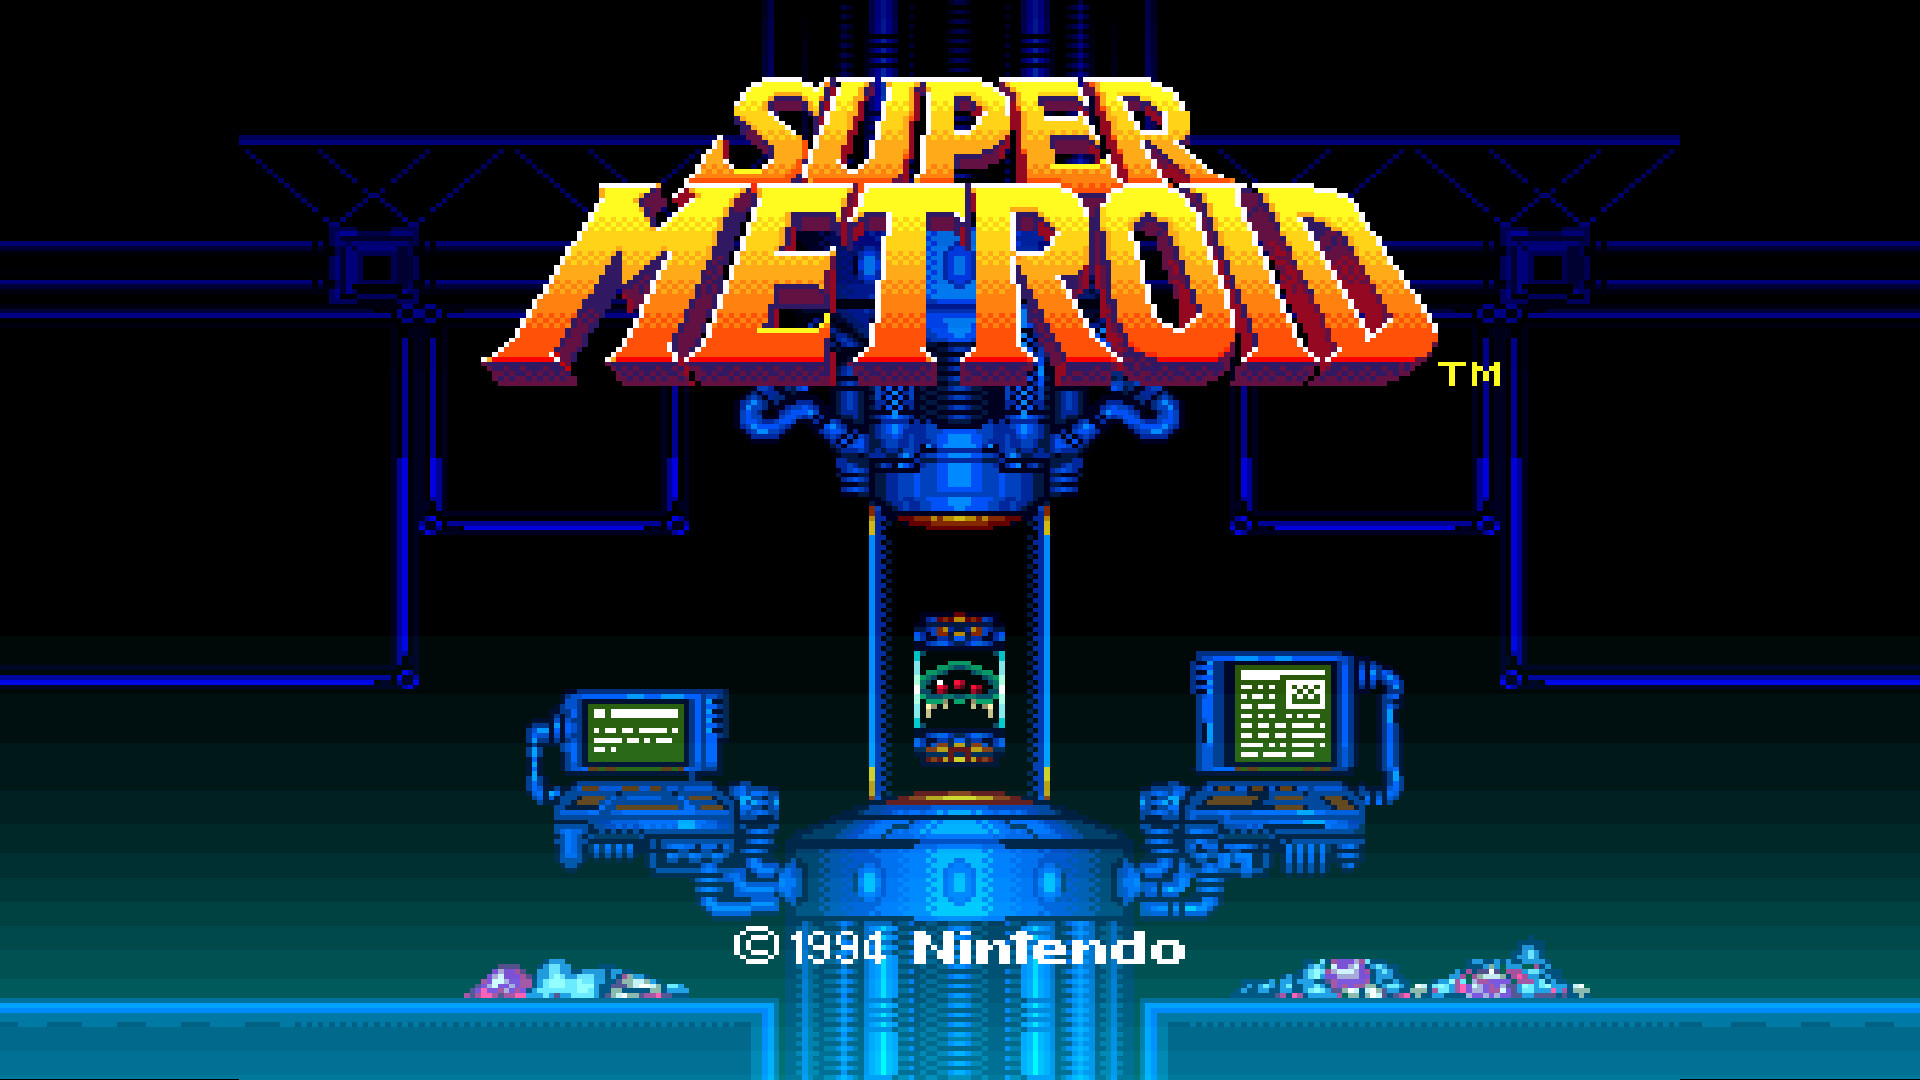 Super Metroid Wallpaper (72+ images).